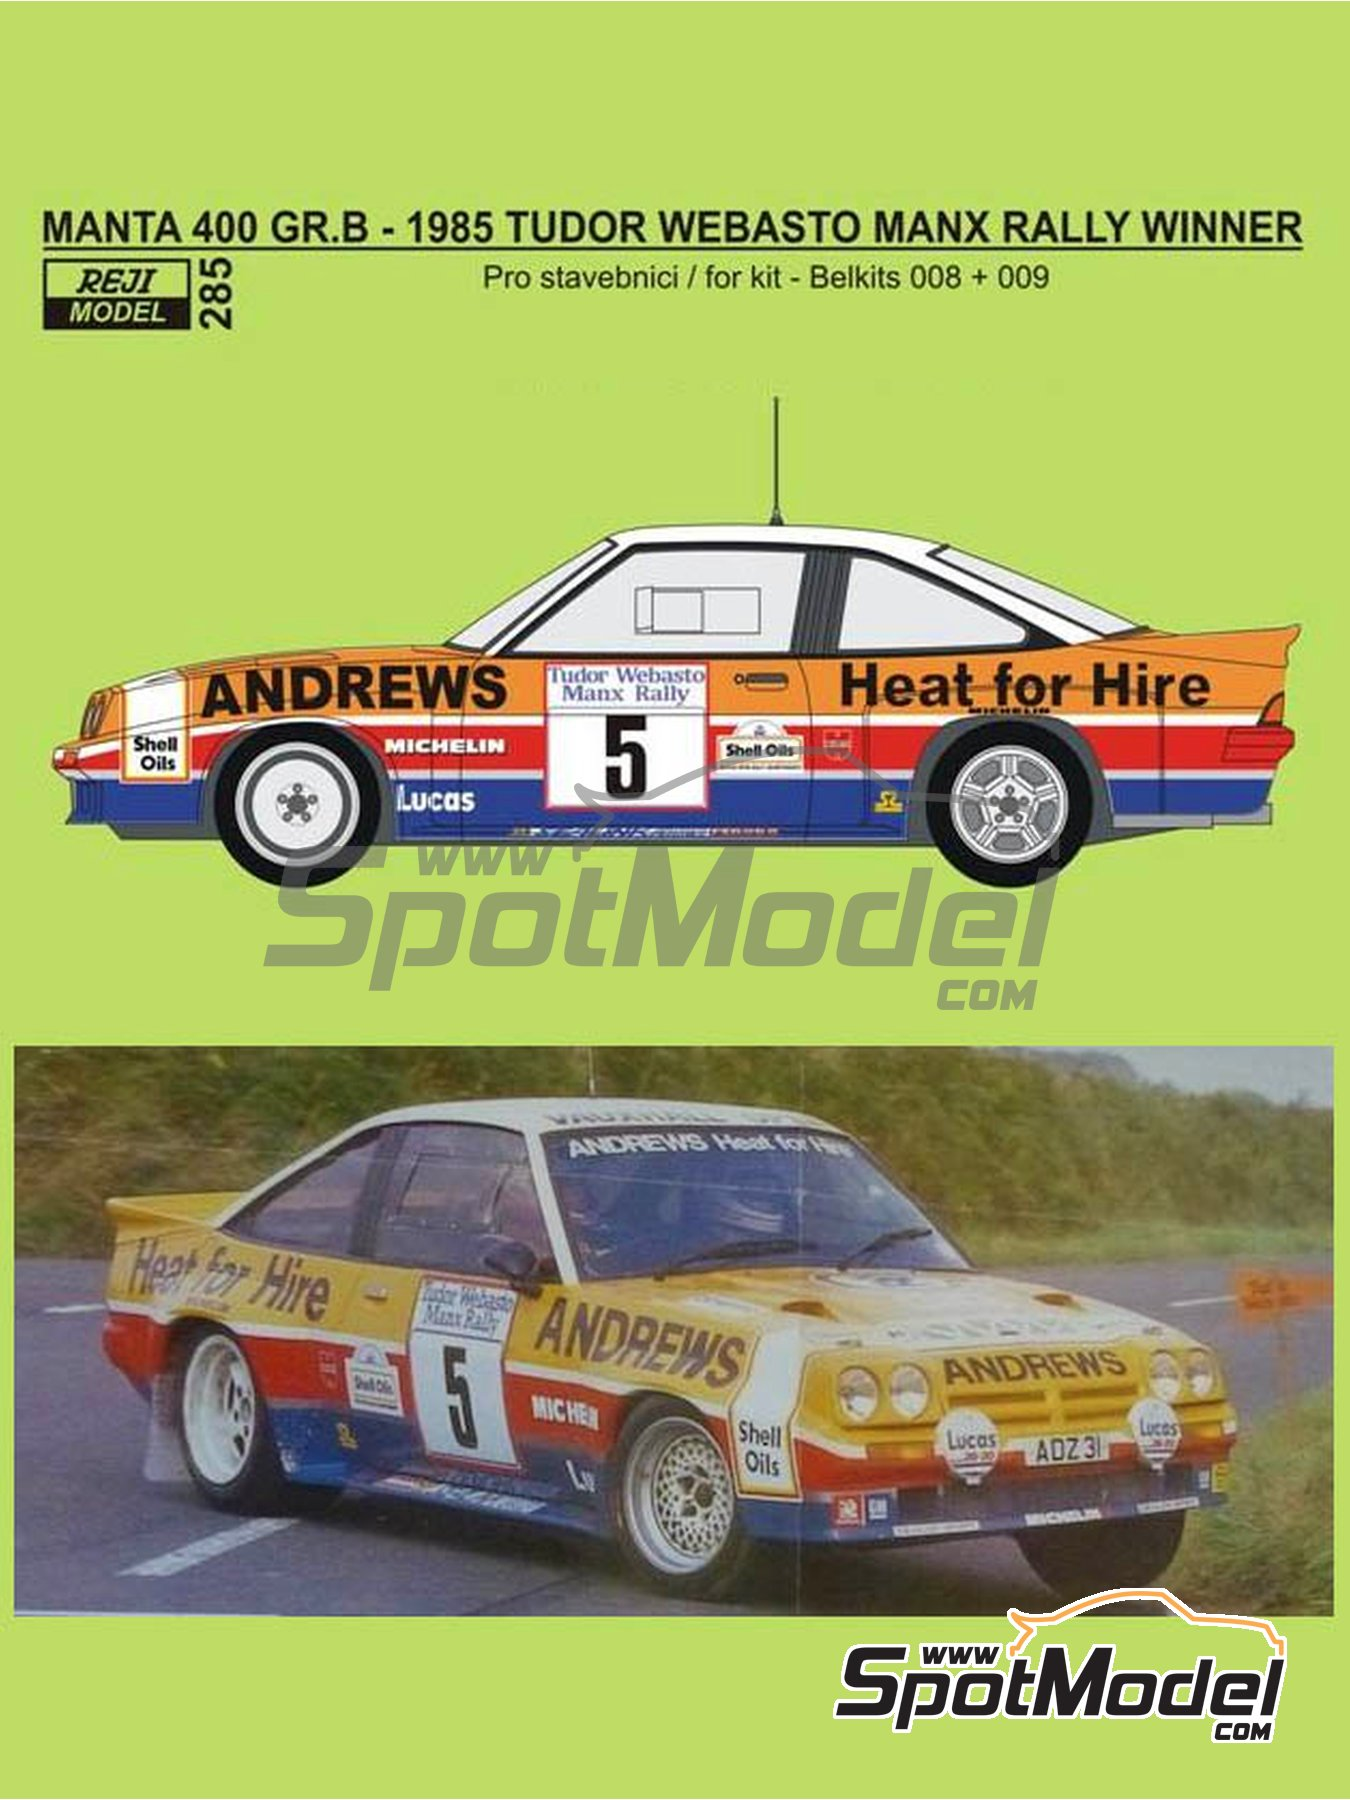 Opel Manta 400 Group B Andrews Heat for hire - Tudor Webasto Manx International Rally 1985 | Marking / livery in 1/24 scale manufactured by Reji Model (ref. REJI-285) image